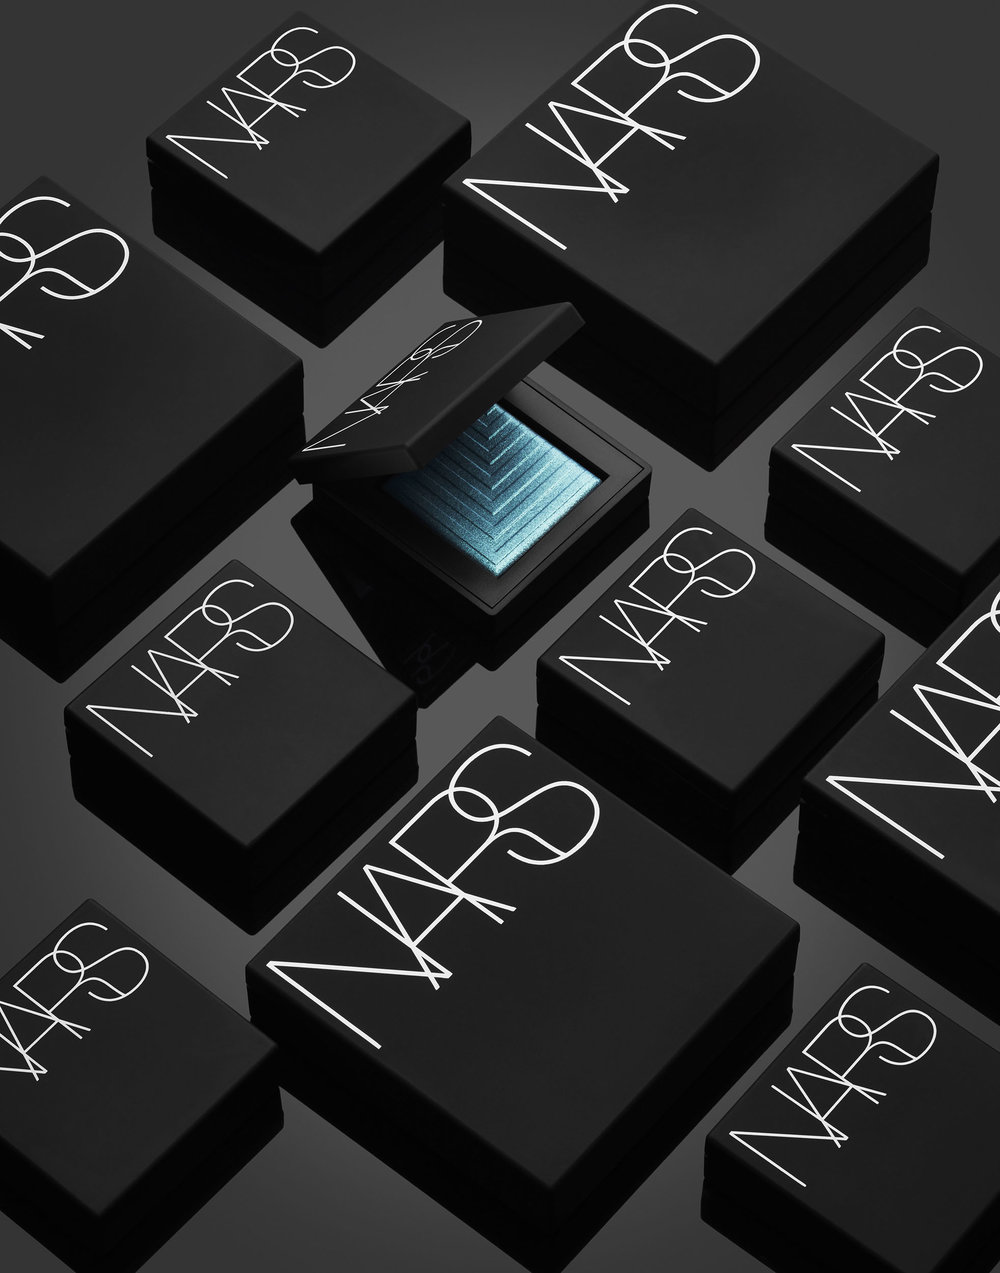 160927 NARS Eyeshadow Teal.jpg